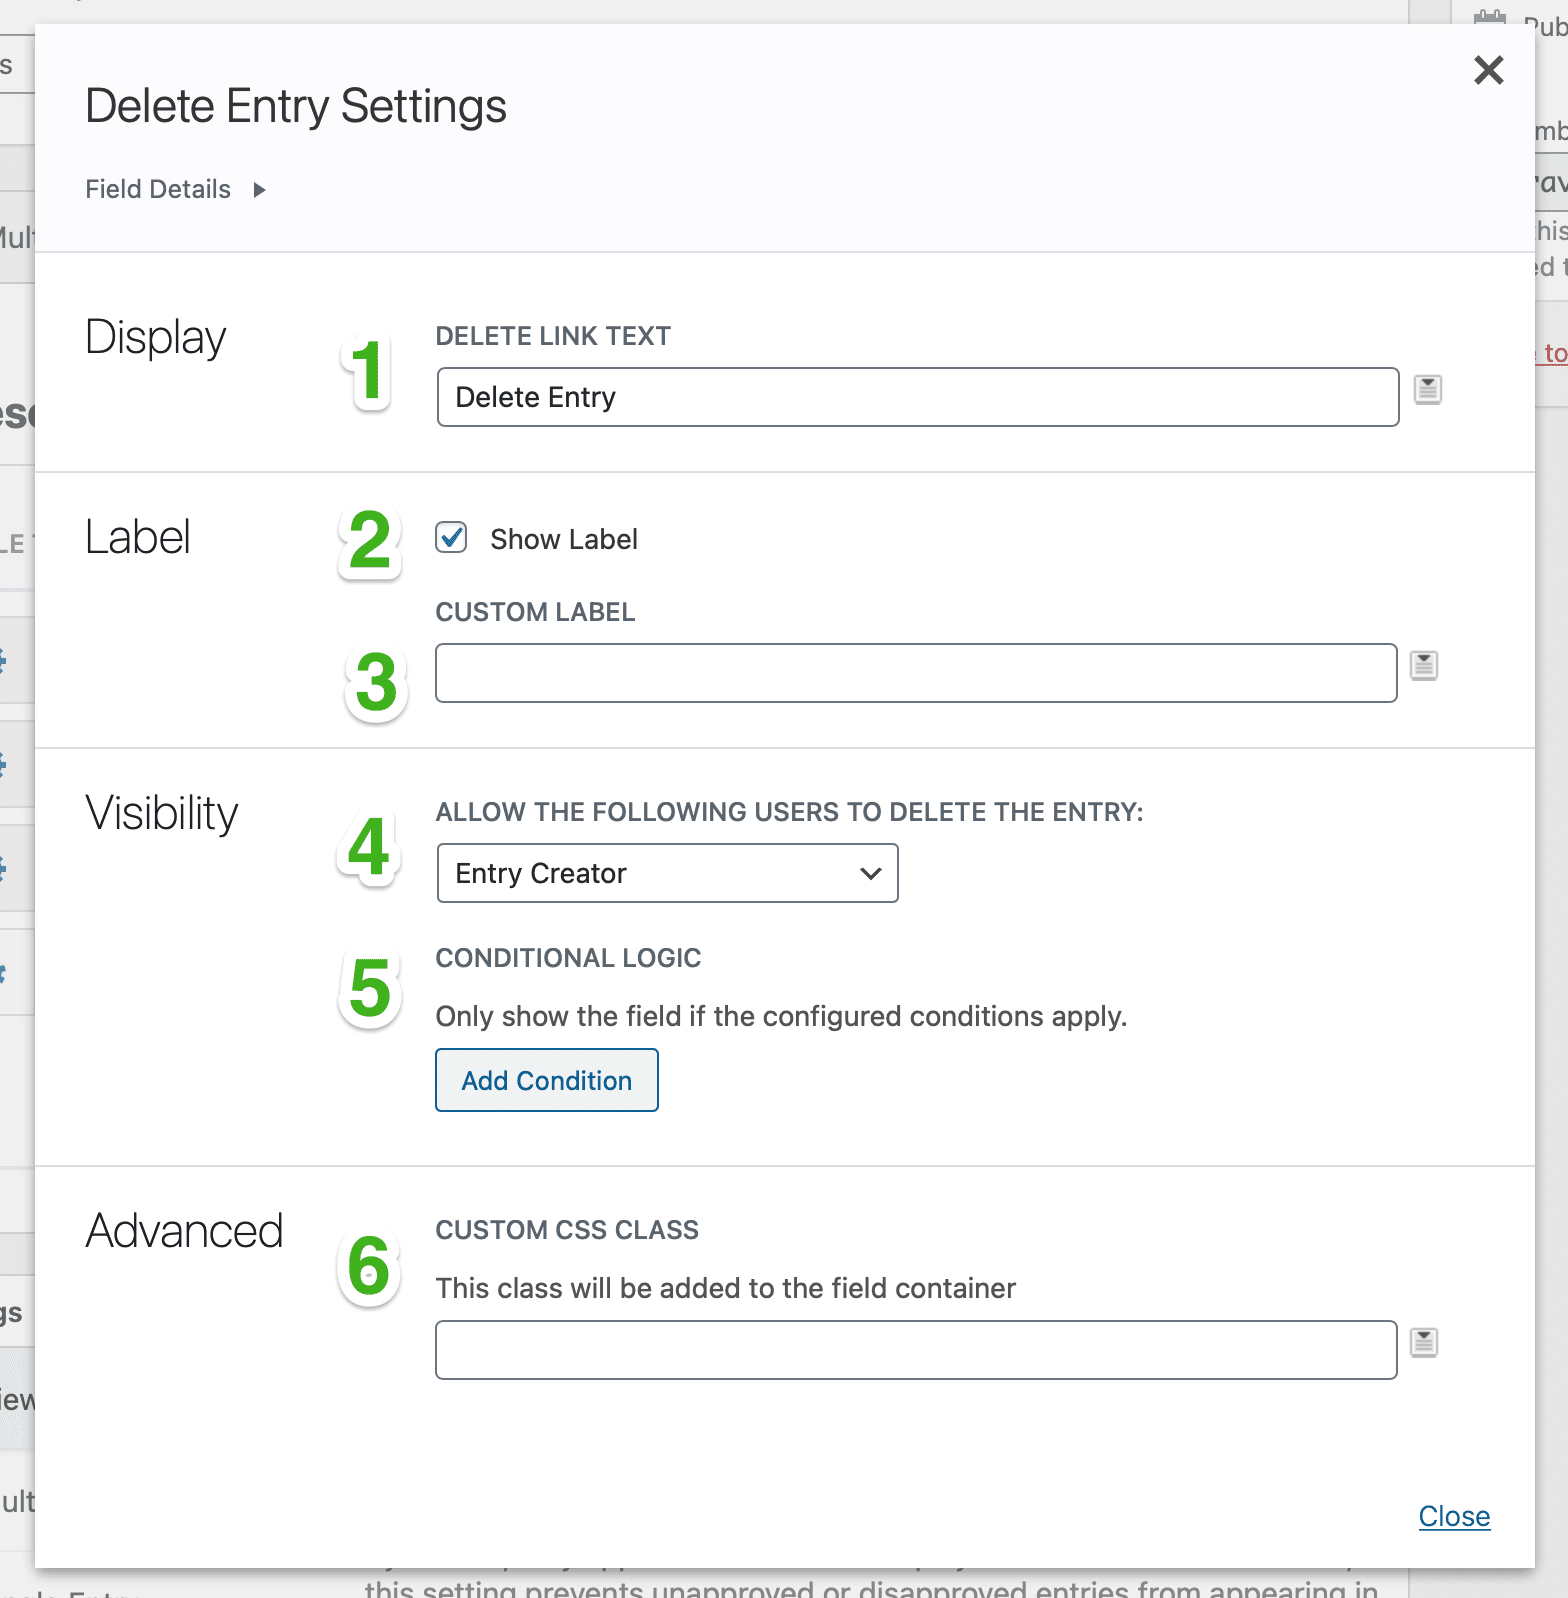 Delete Entry field settings with numbers placed over each of the settings